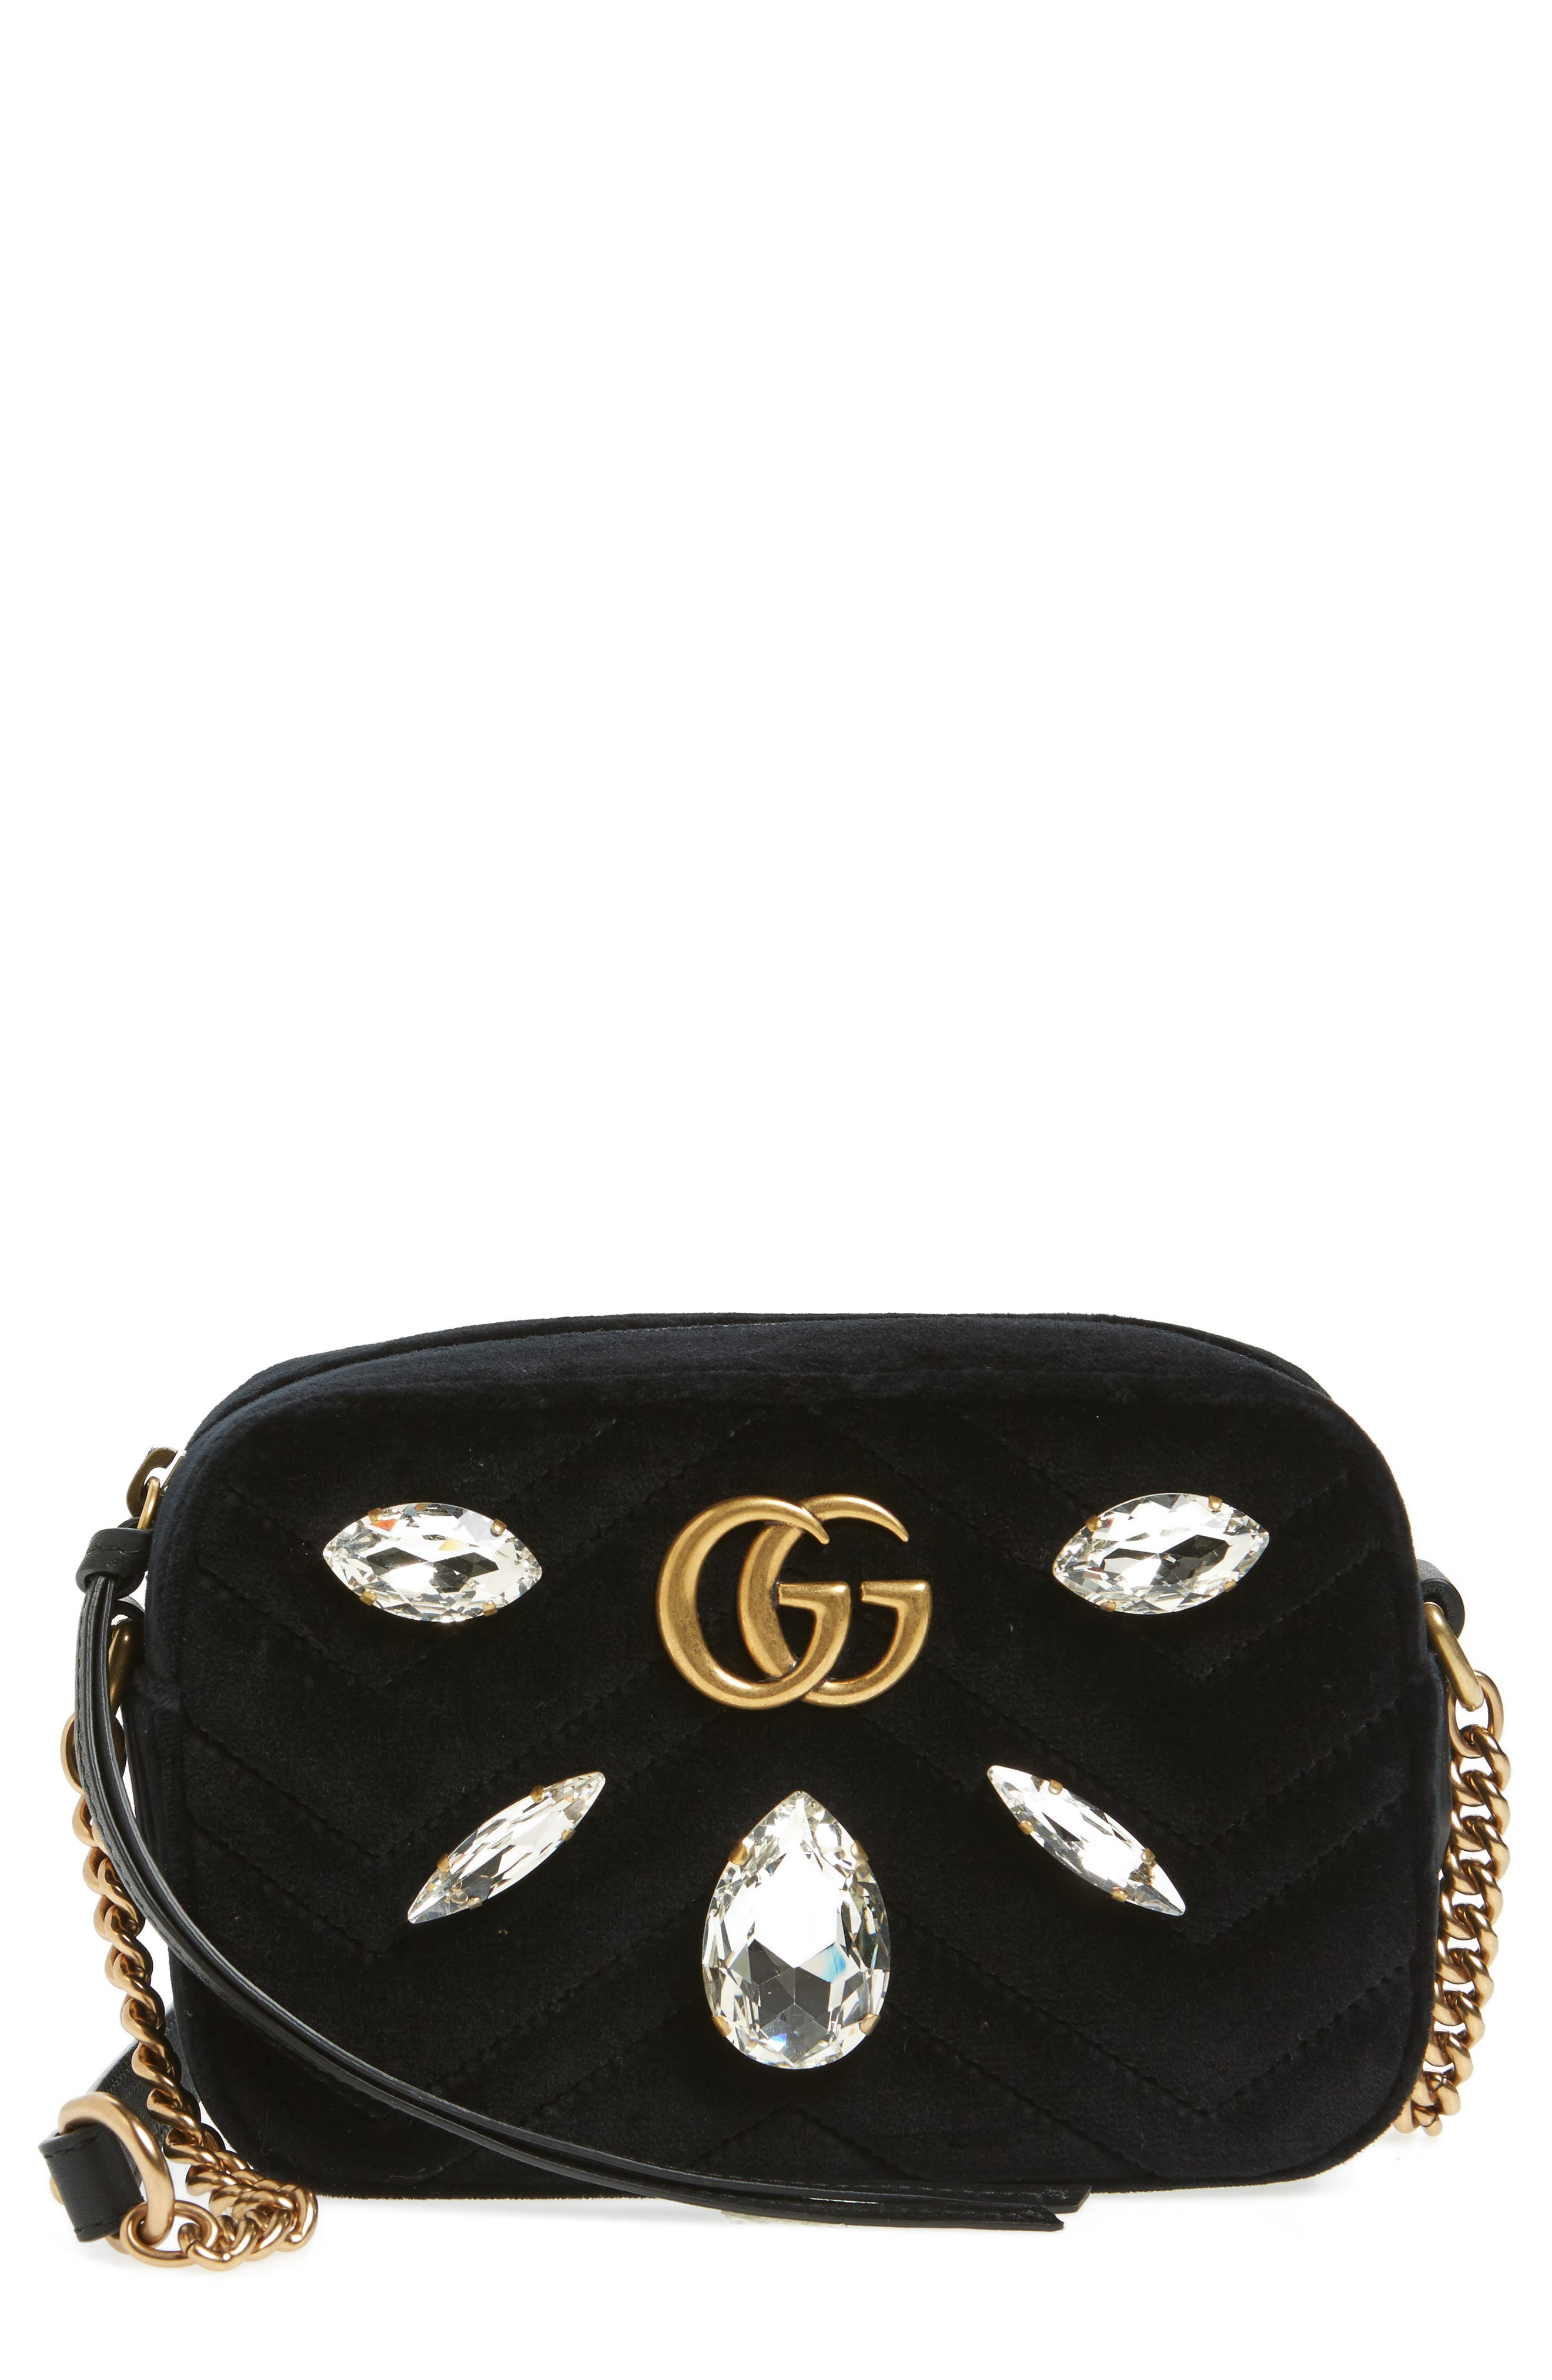 GG Marmont Crystal Matelassé Quilted Velvet Crossbody Bag,                             Main thumbnail 1, color,                             Nero/ Crystal